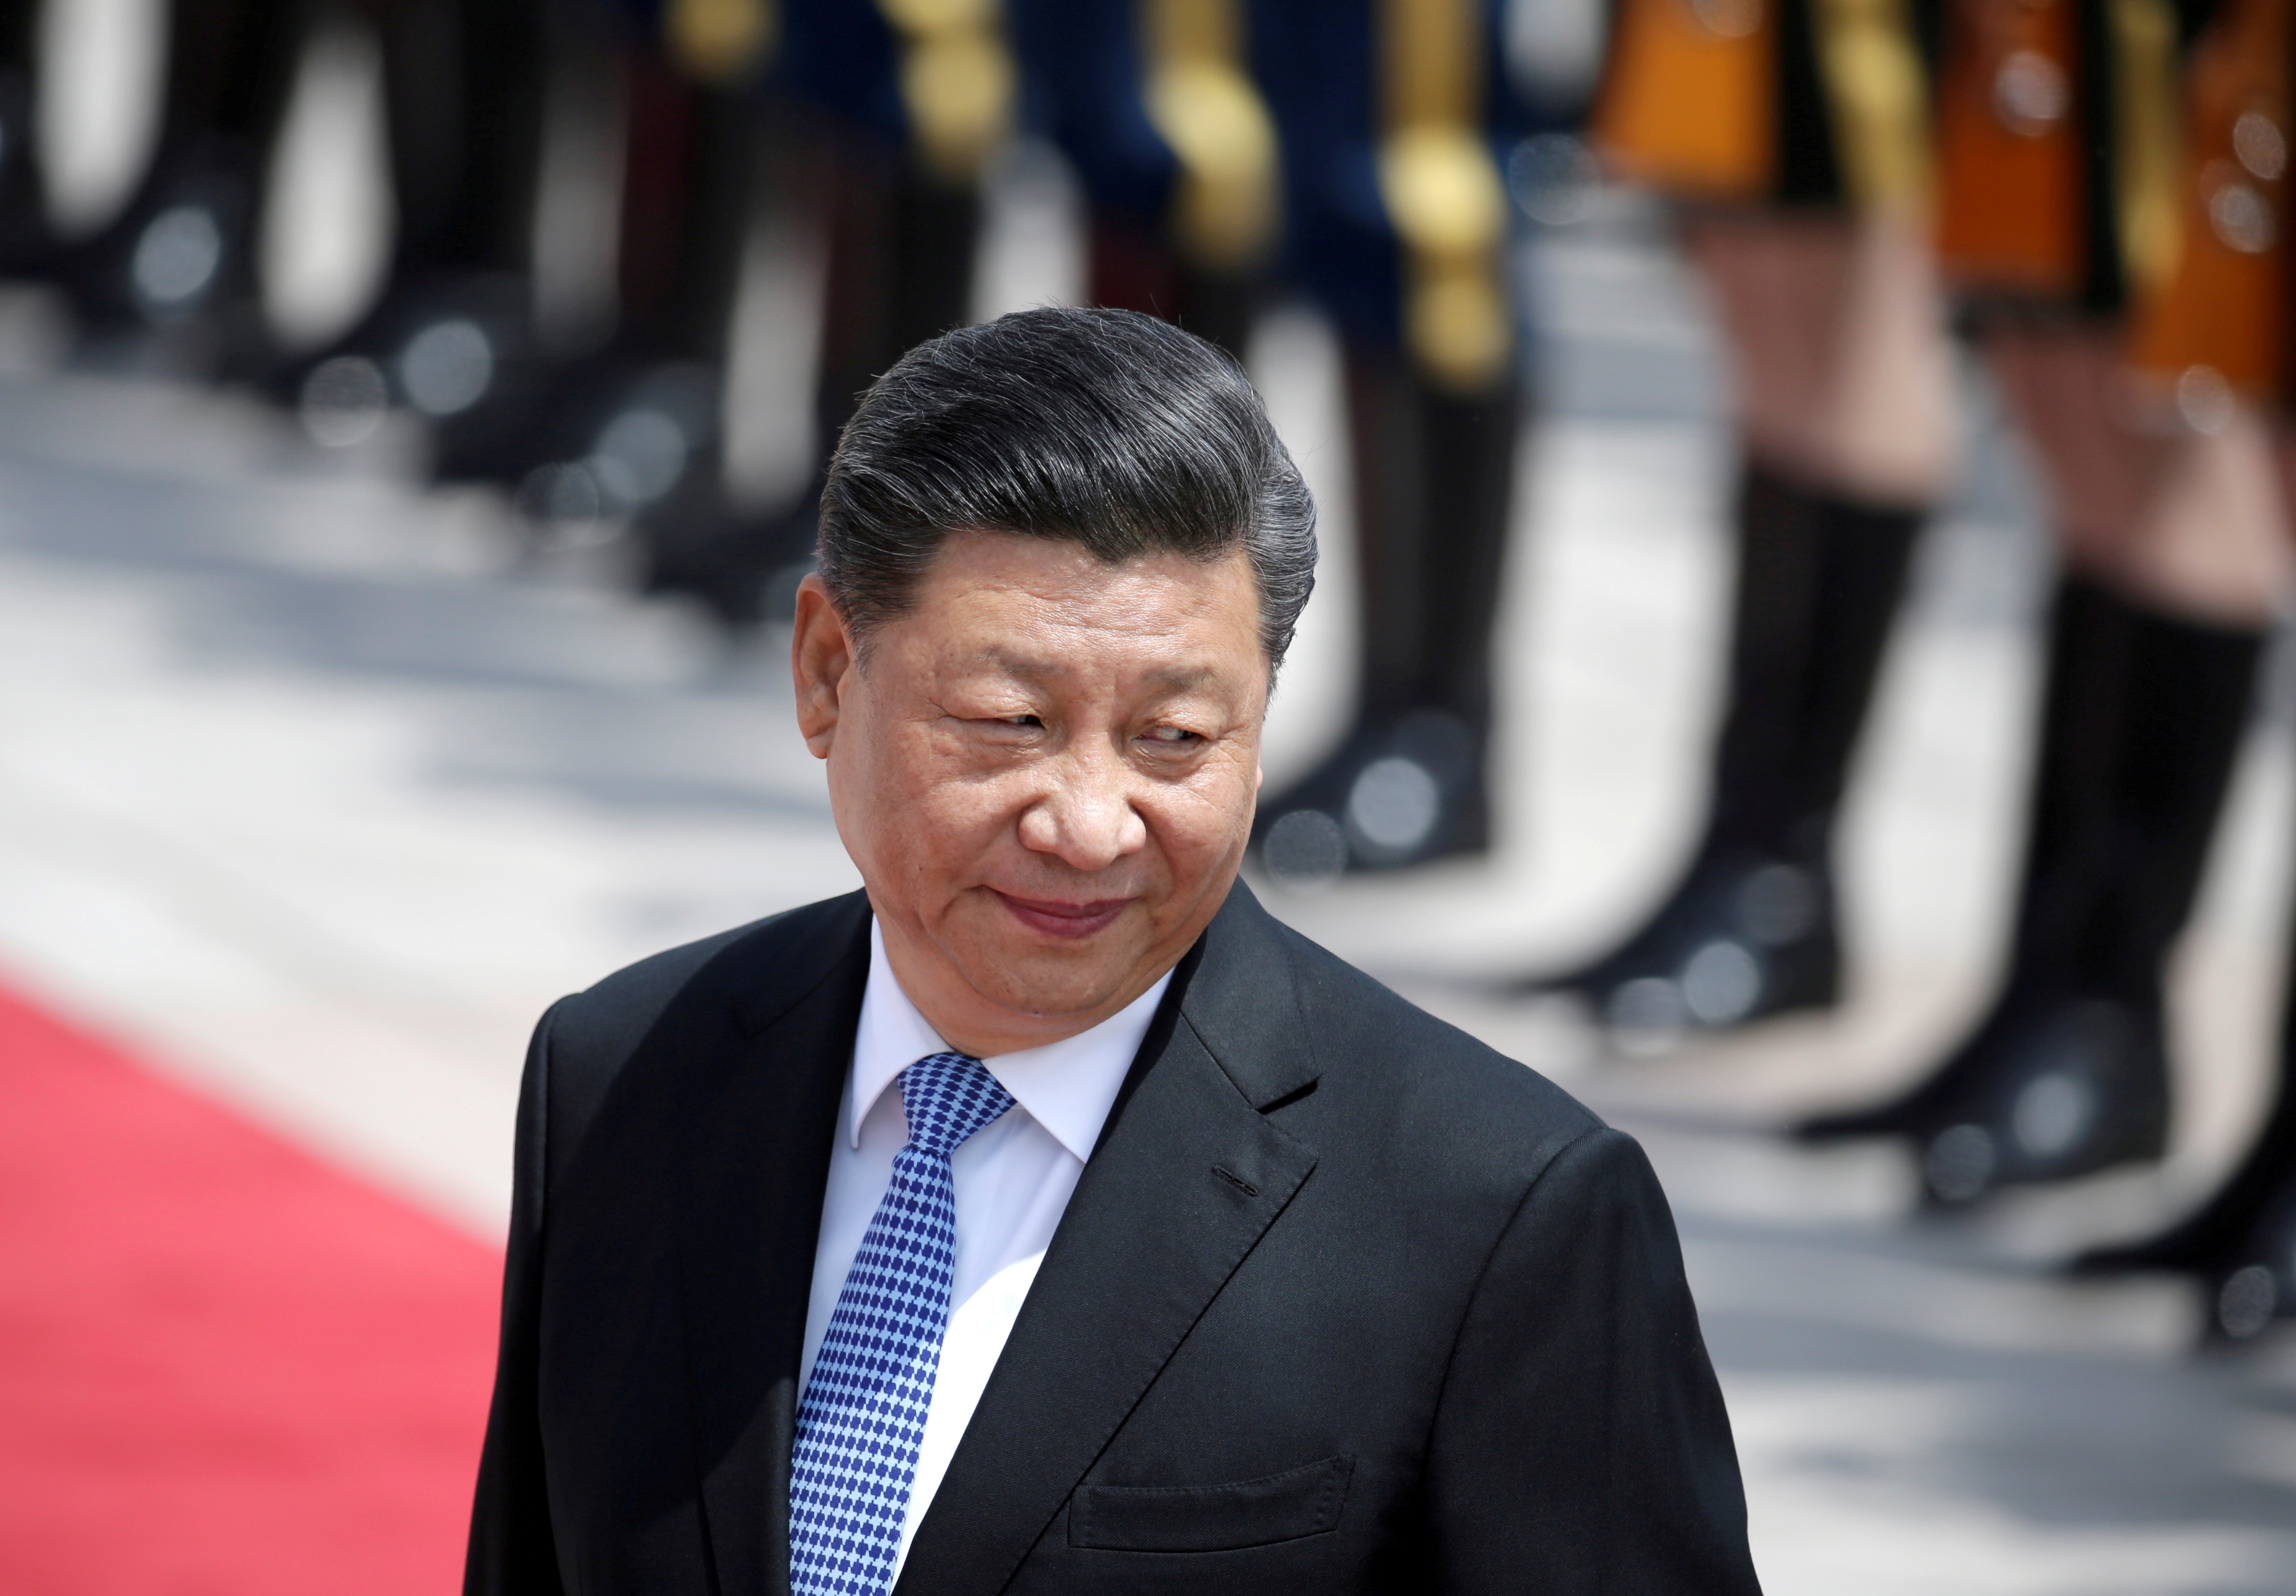 Chinese President Xi Jinping attends a welcoming ceremony for Greek President Prokopis Pavlopoulos outside the Great Hall of the People, in Beijing, China May 14, 2019. REUTERS/Jason Lee//File Photo